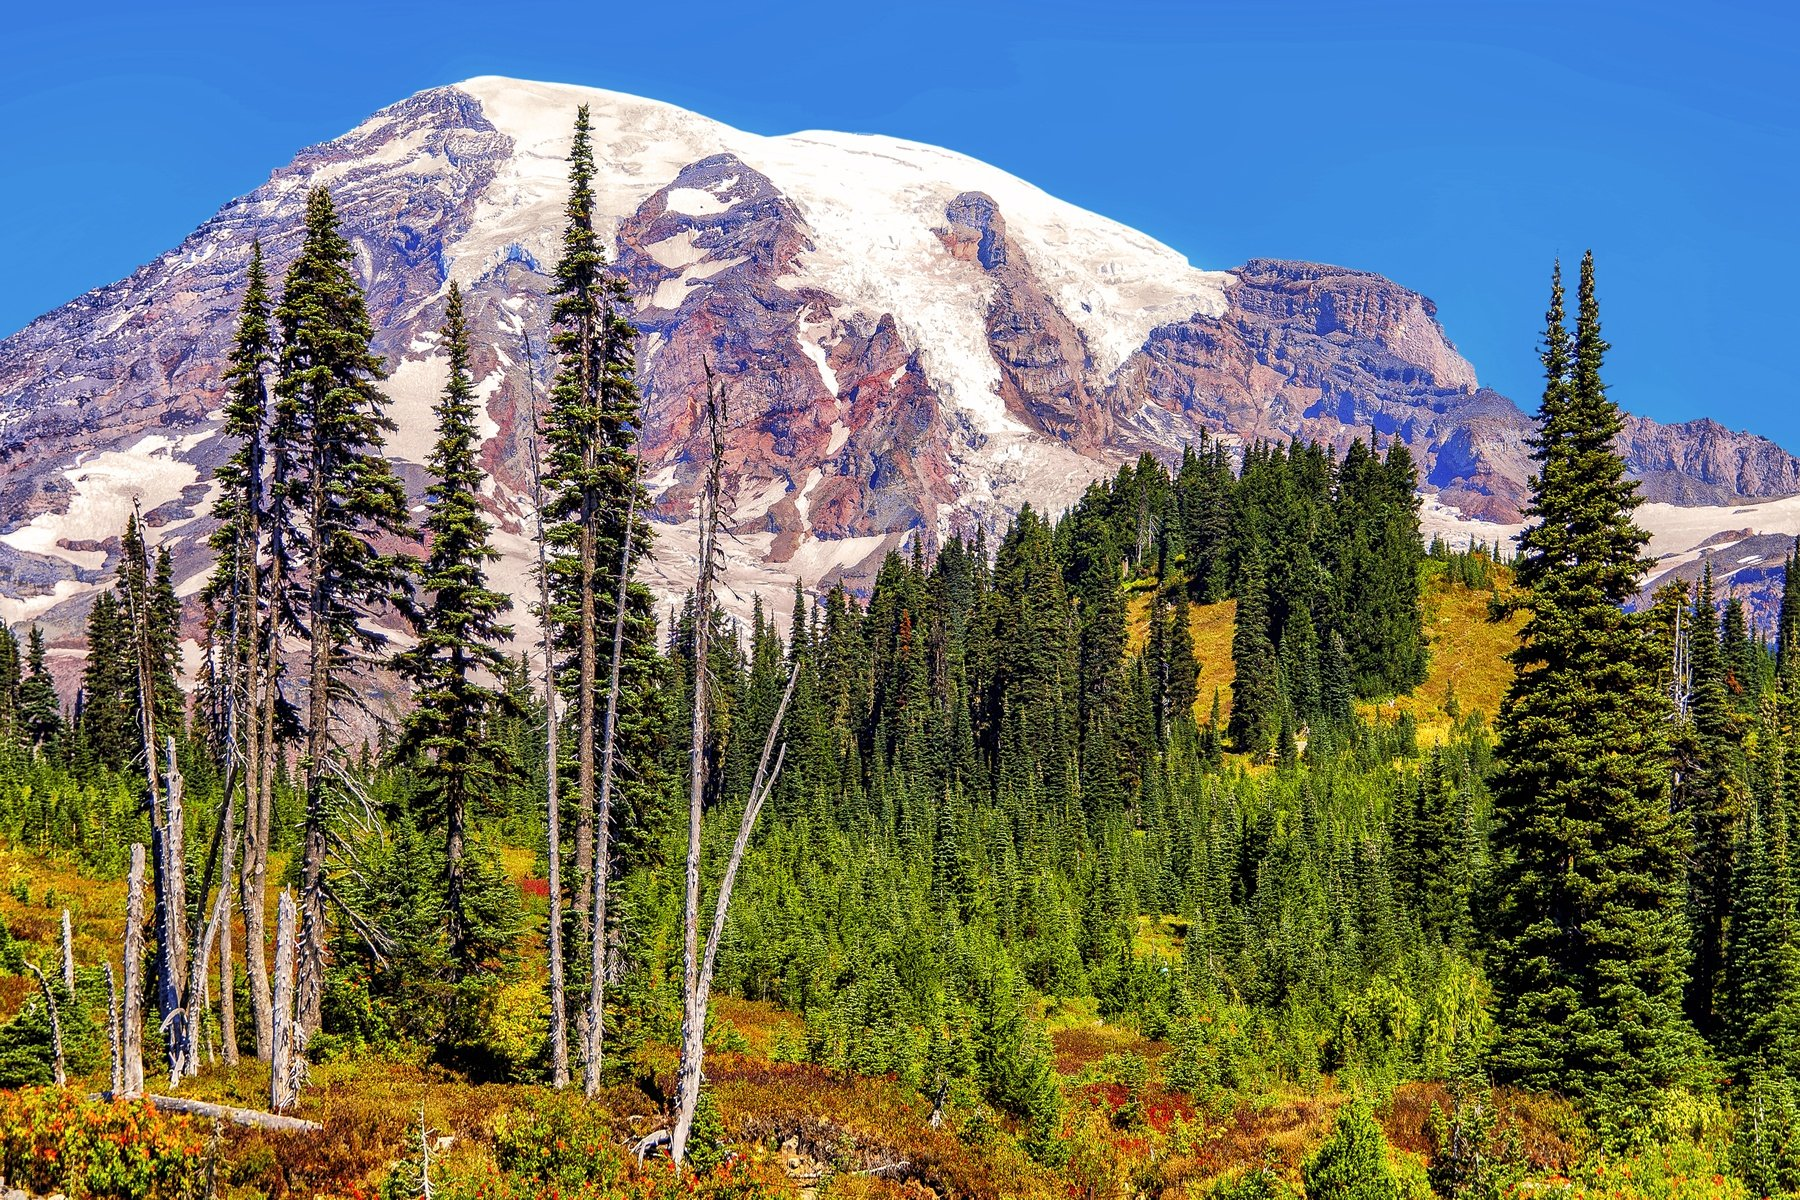 RAINIER - The view from the visitor center in Mount Rainier National Park, Washington.